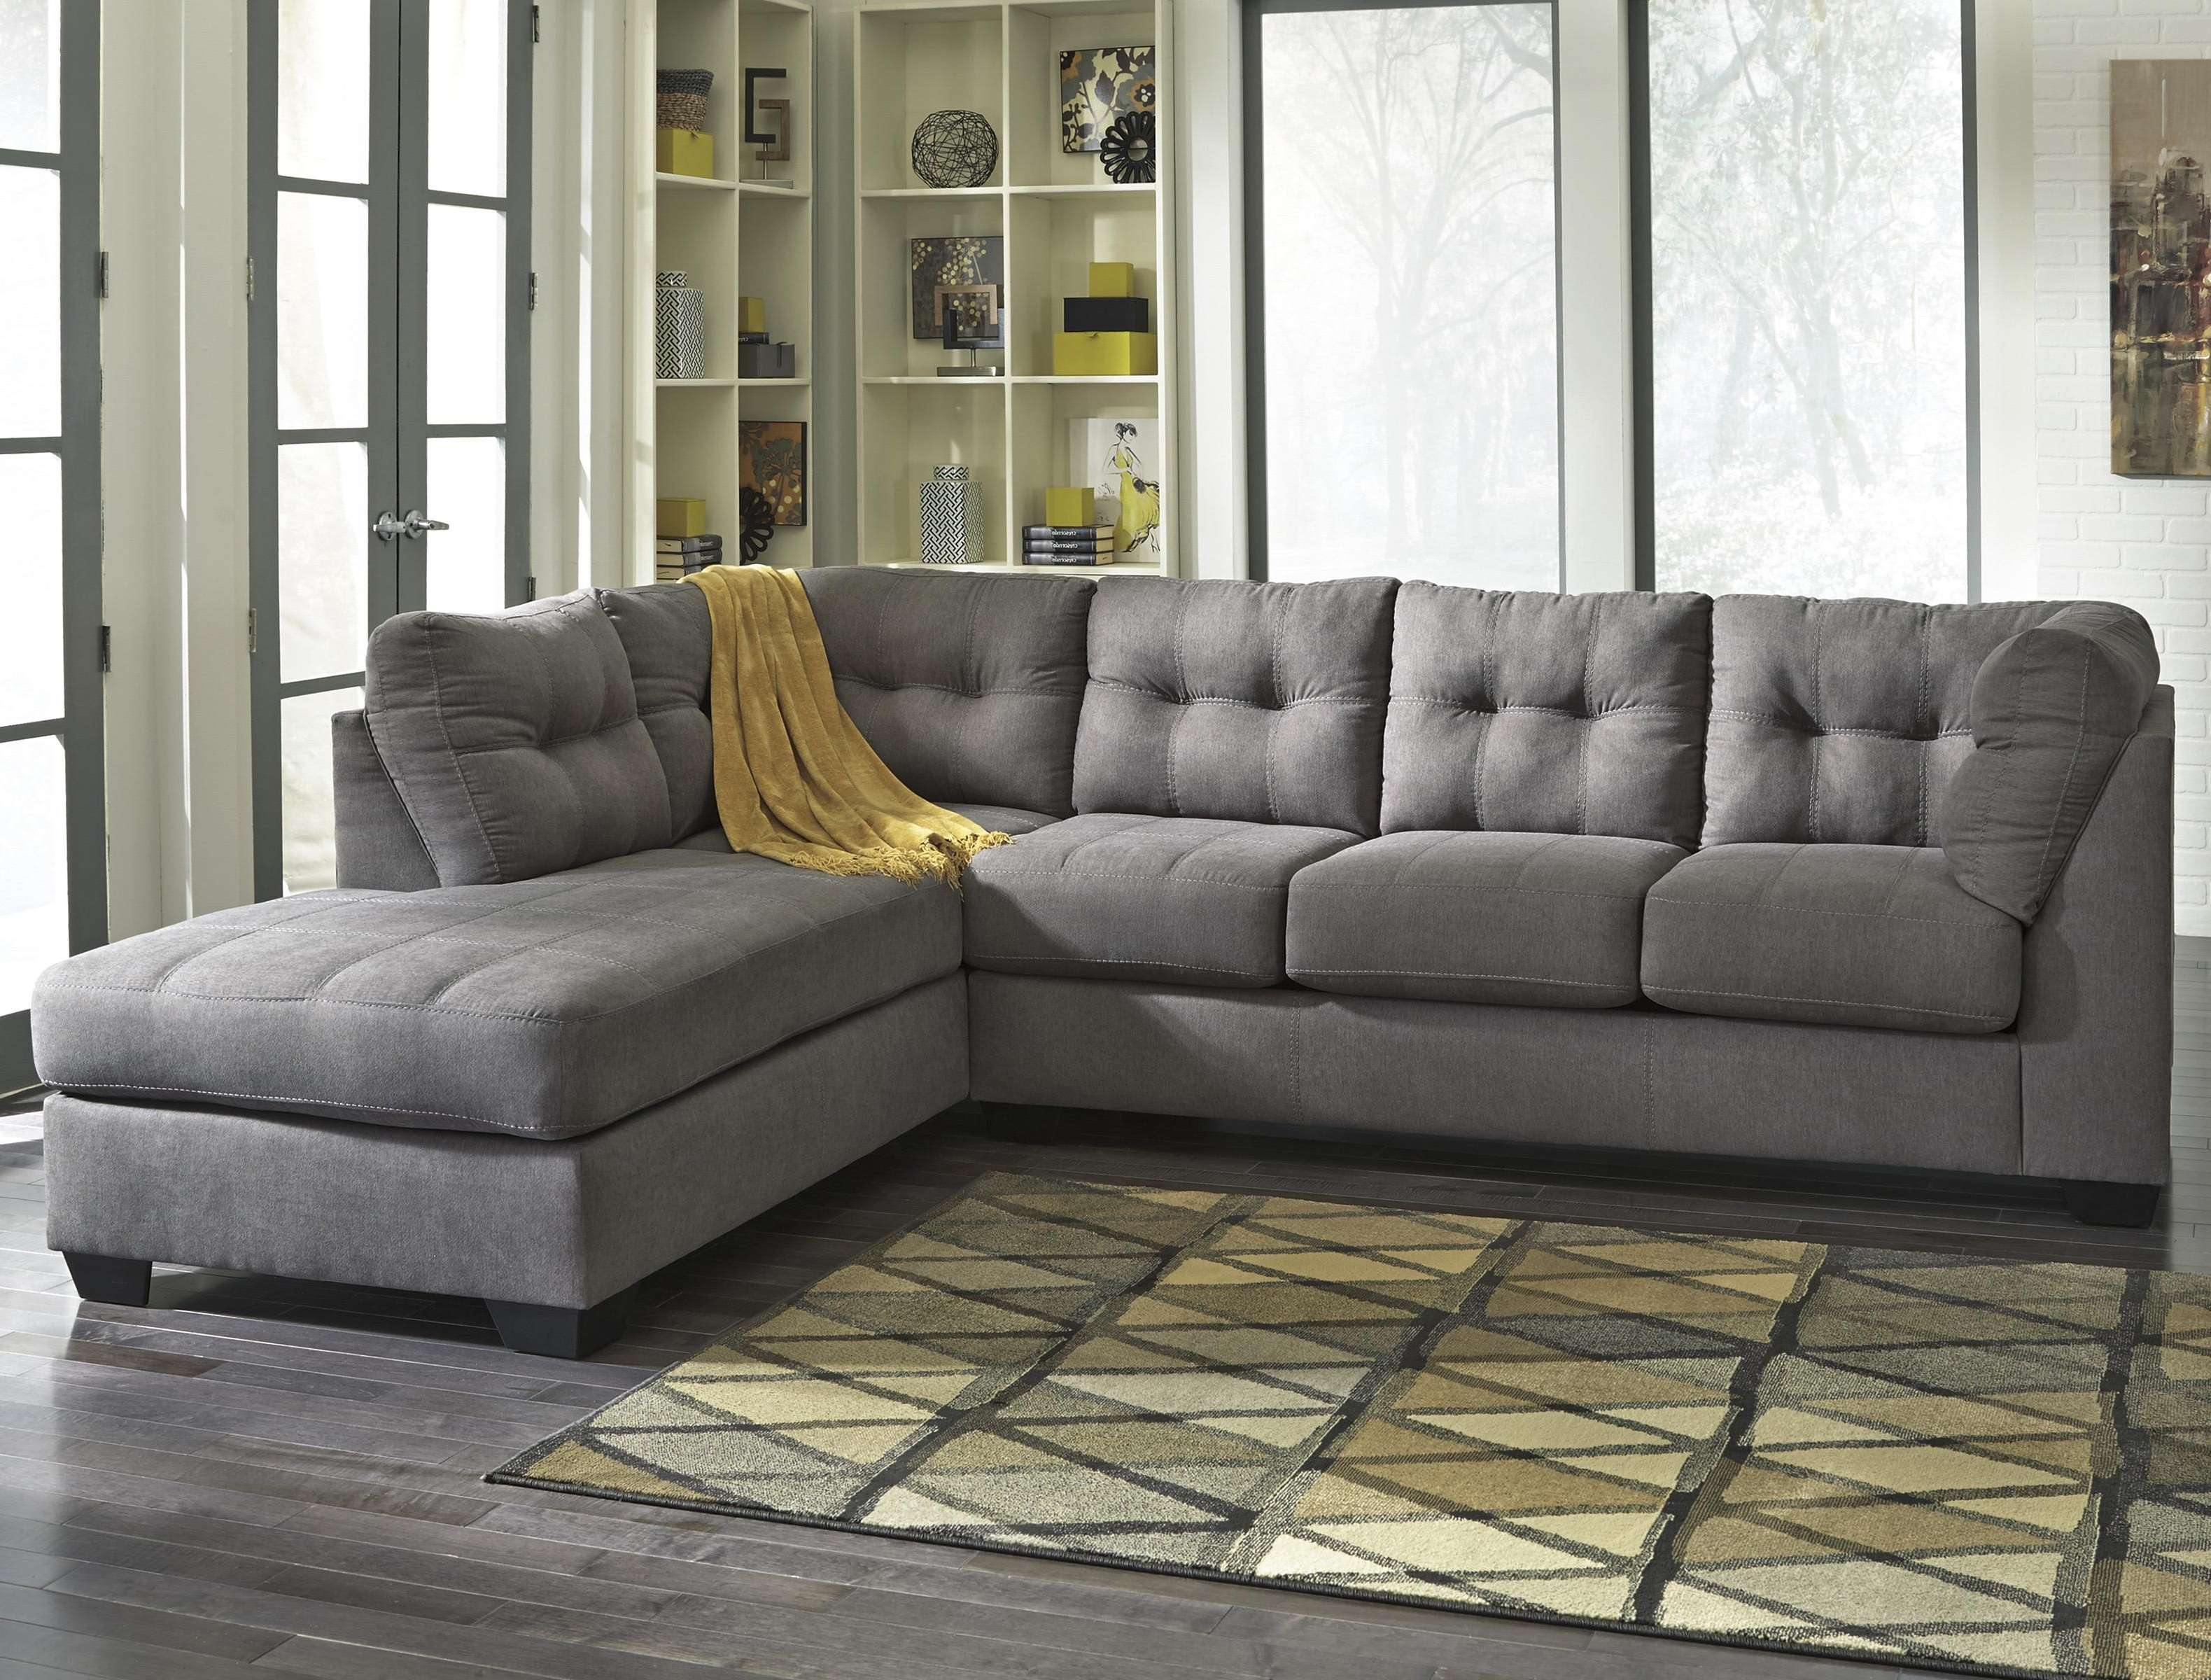 Recent Kingston Ontario Sectional Sofas Regarding Jb King Mendel 2 Piece Sectional With Right Chaise (View 16 of 20)